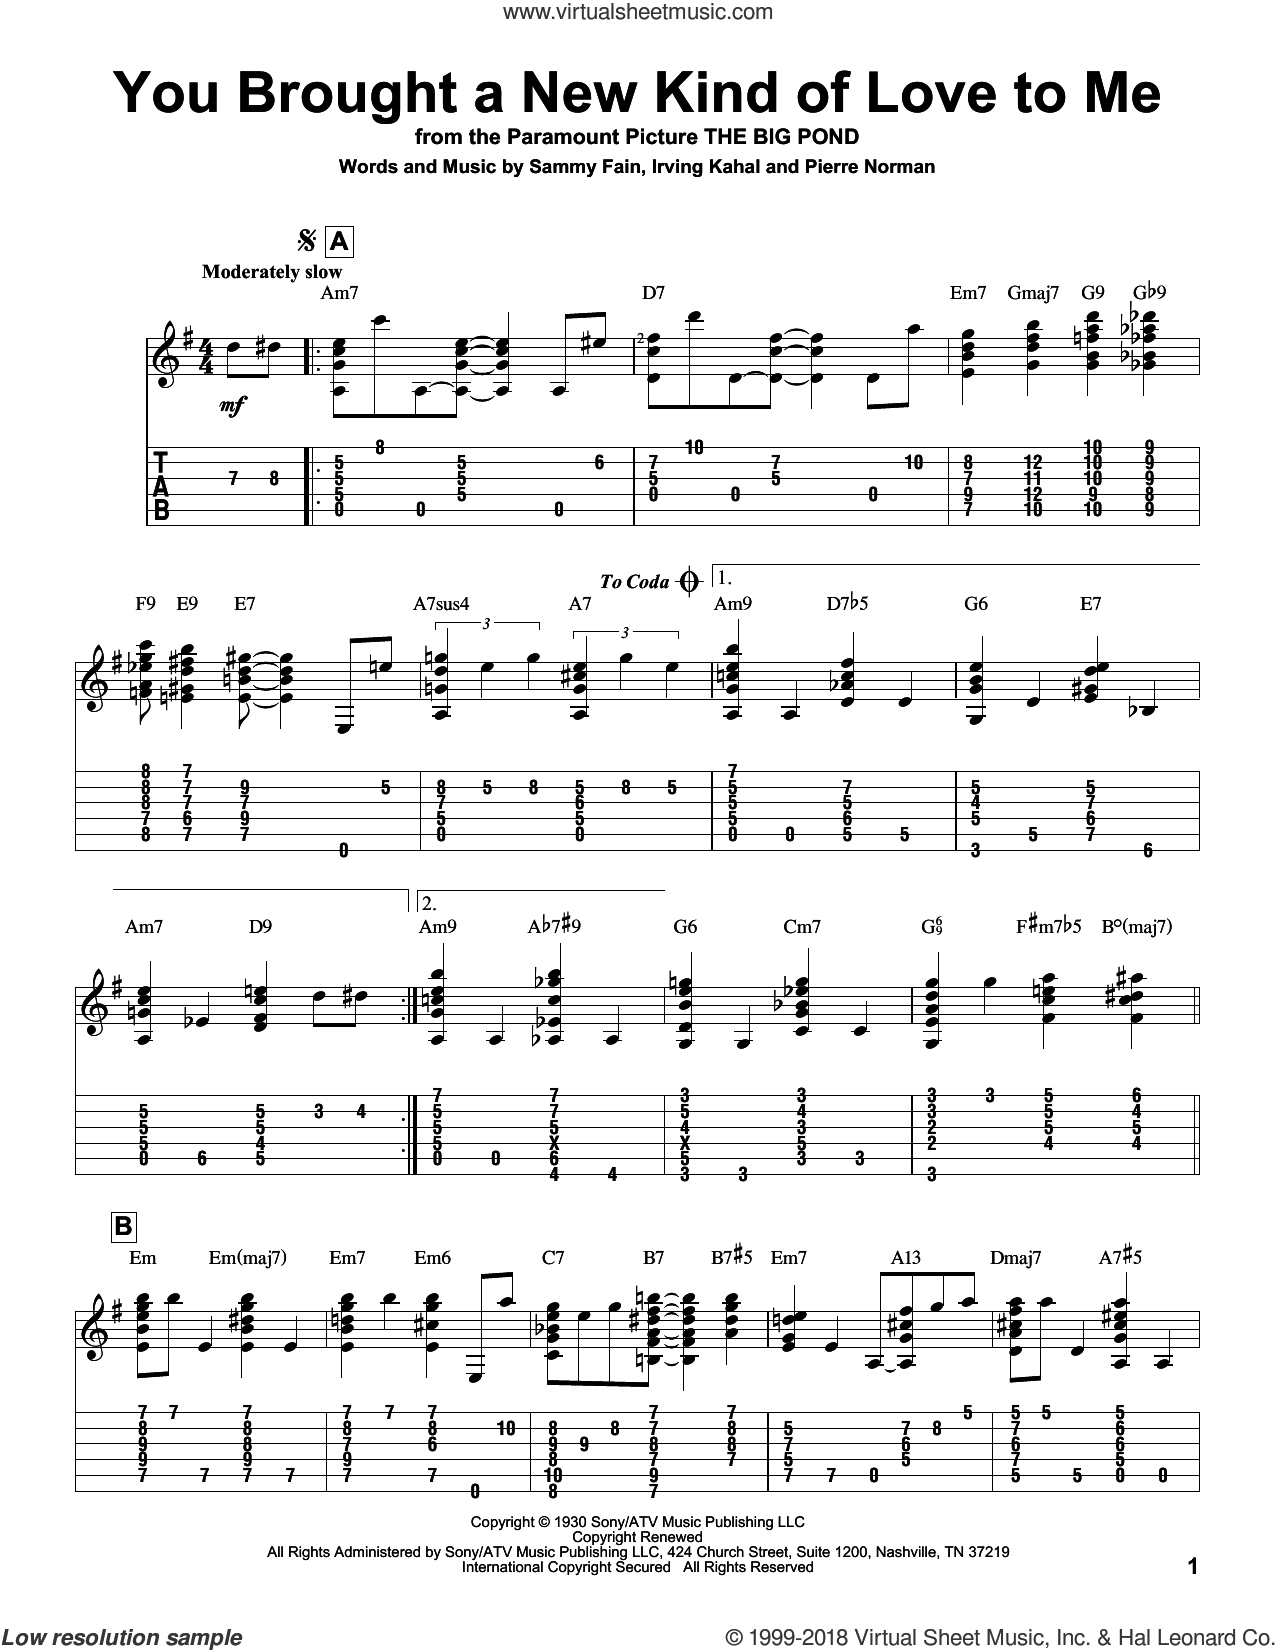 You Brought A New Kind Of Love To Me sheet music for guitar solo by Frank Sinatra, Jeff Arnold, Irving Kahal, Pierre Norman and Sammy Fain, intermediate skill level